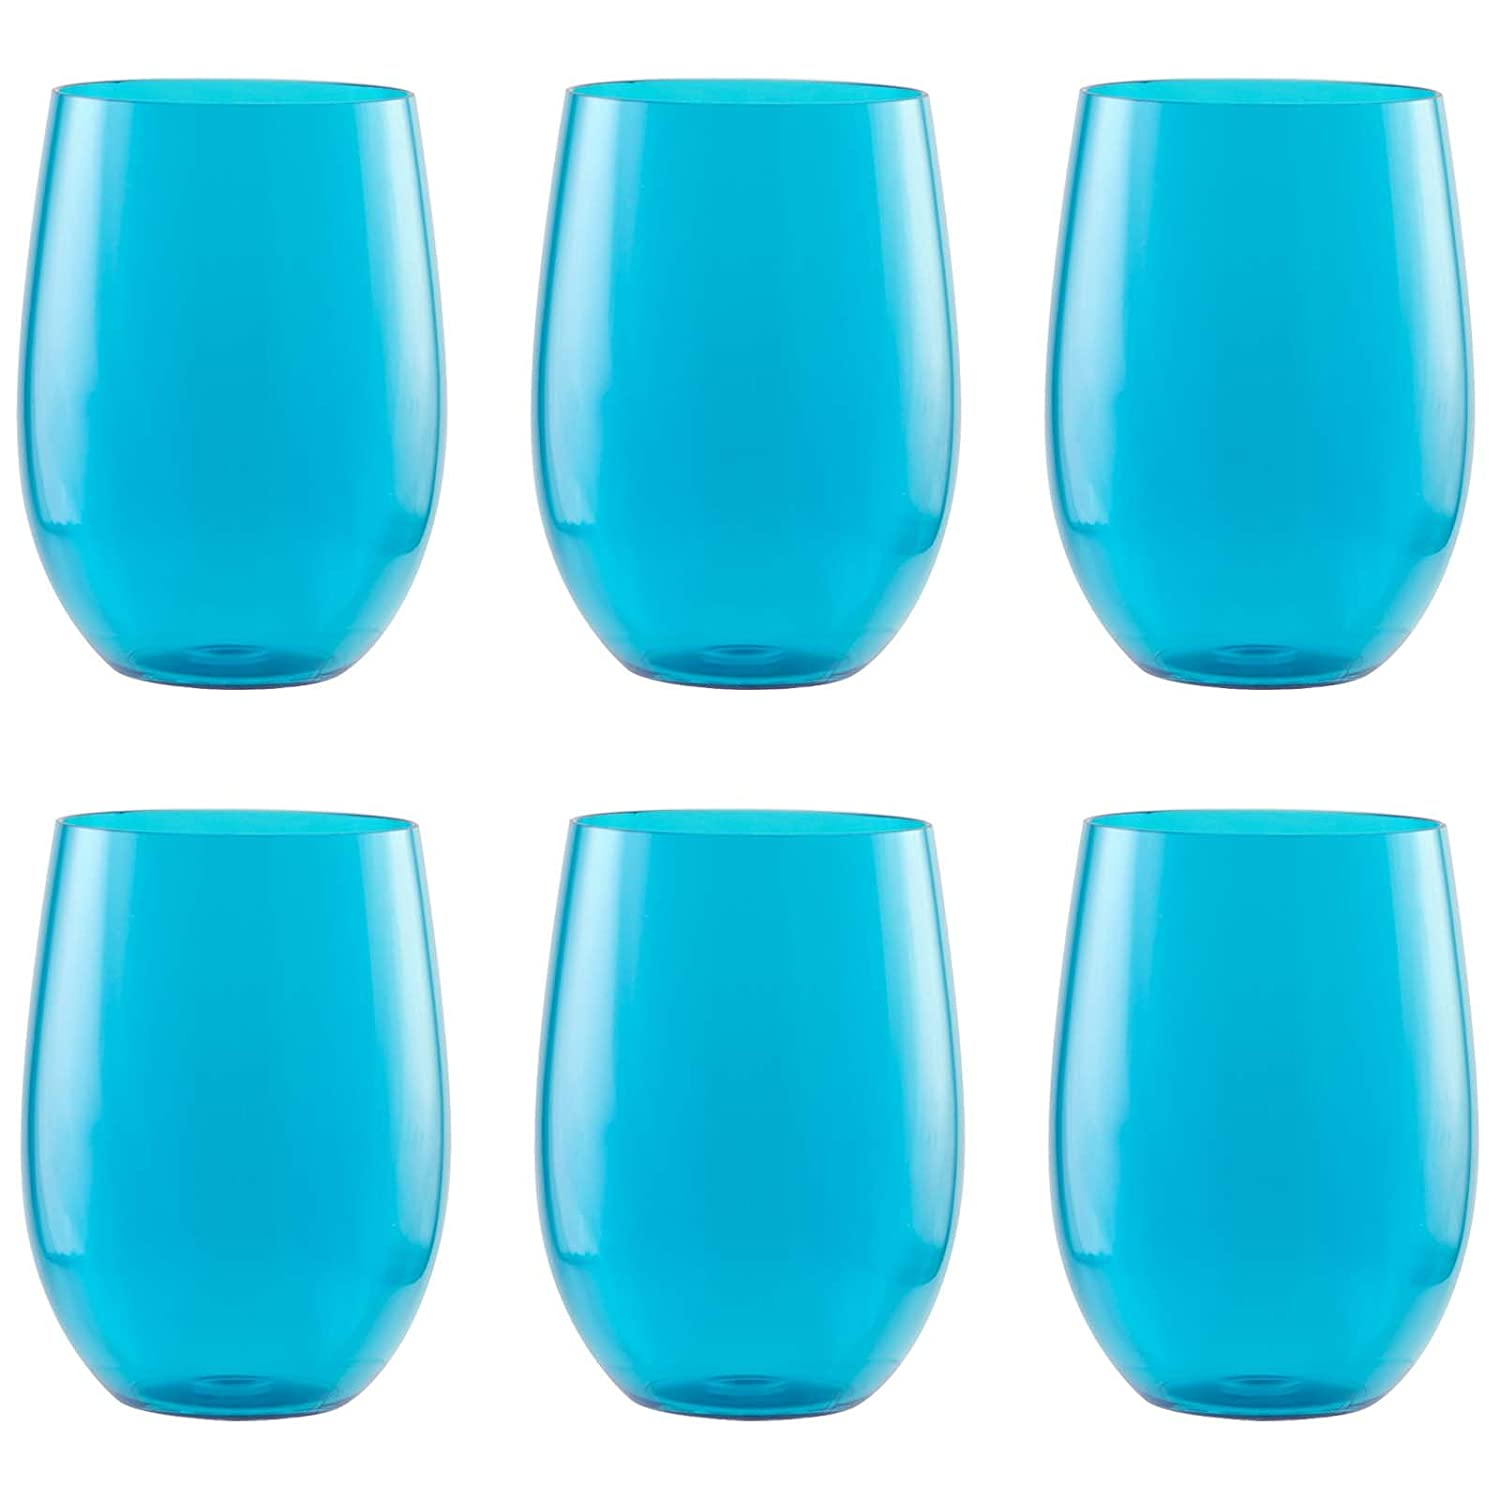 Zak Designs Adele Stemless Wine Glass, Small, Azure, Set of 6 0412-5975-ISET